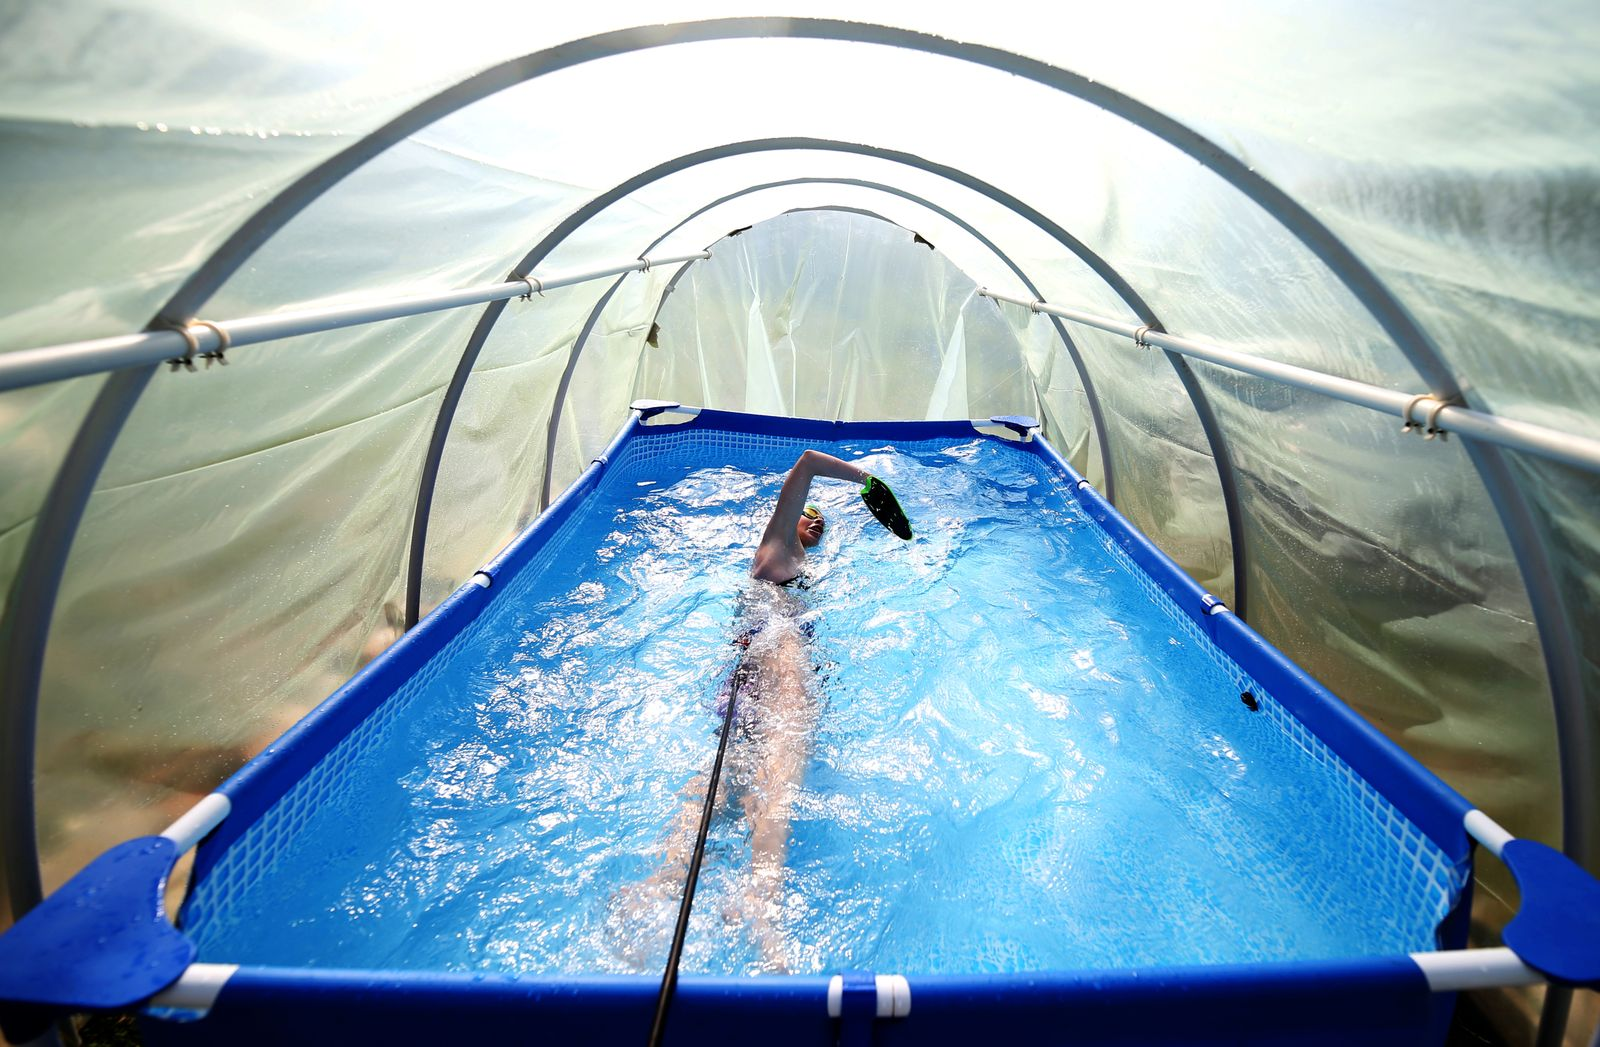 Iman Avdic maintains her form by practicing in a small plastic pool inside an improvised greenhouse in her grandfather's orchard in Doboj